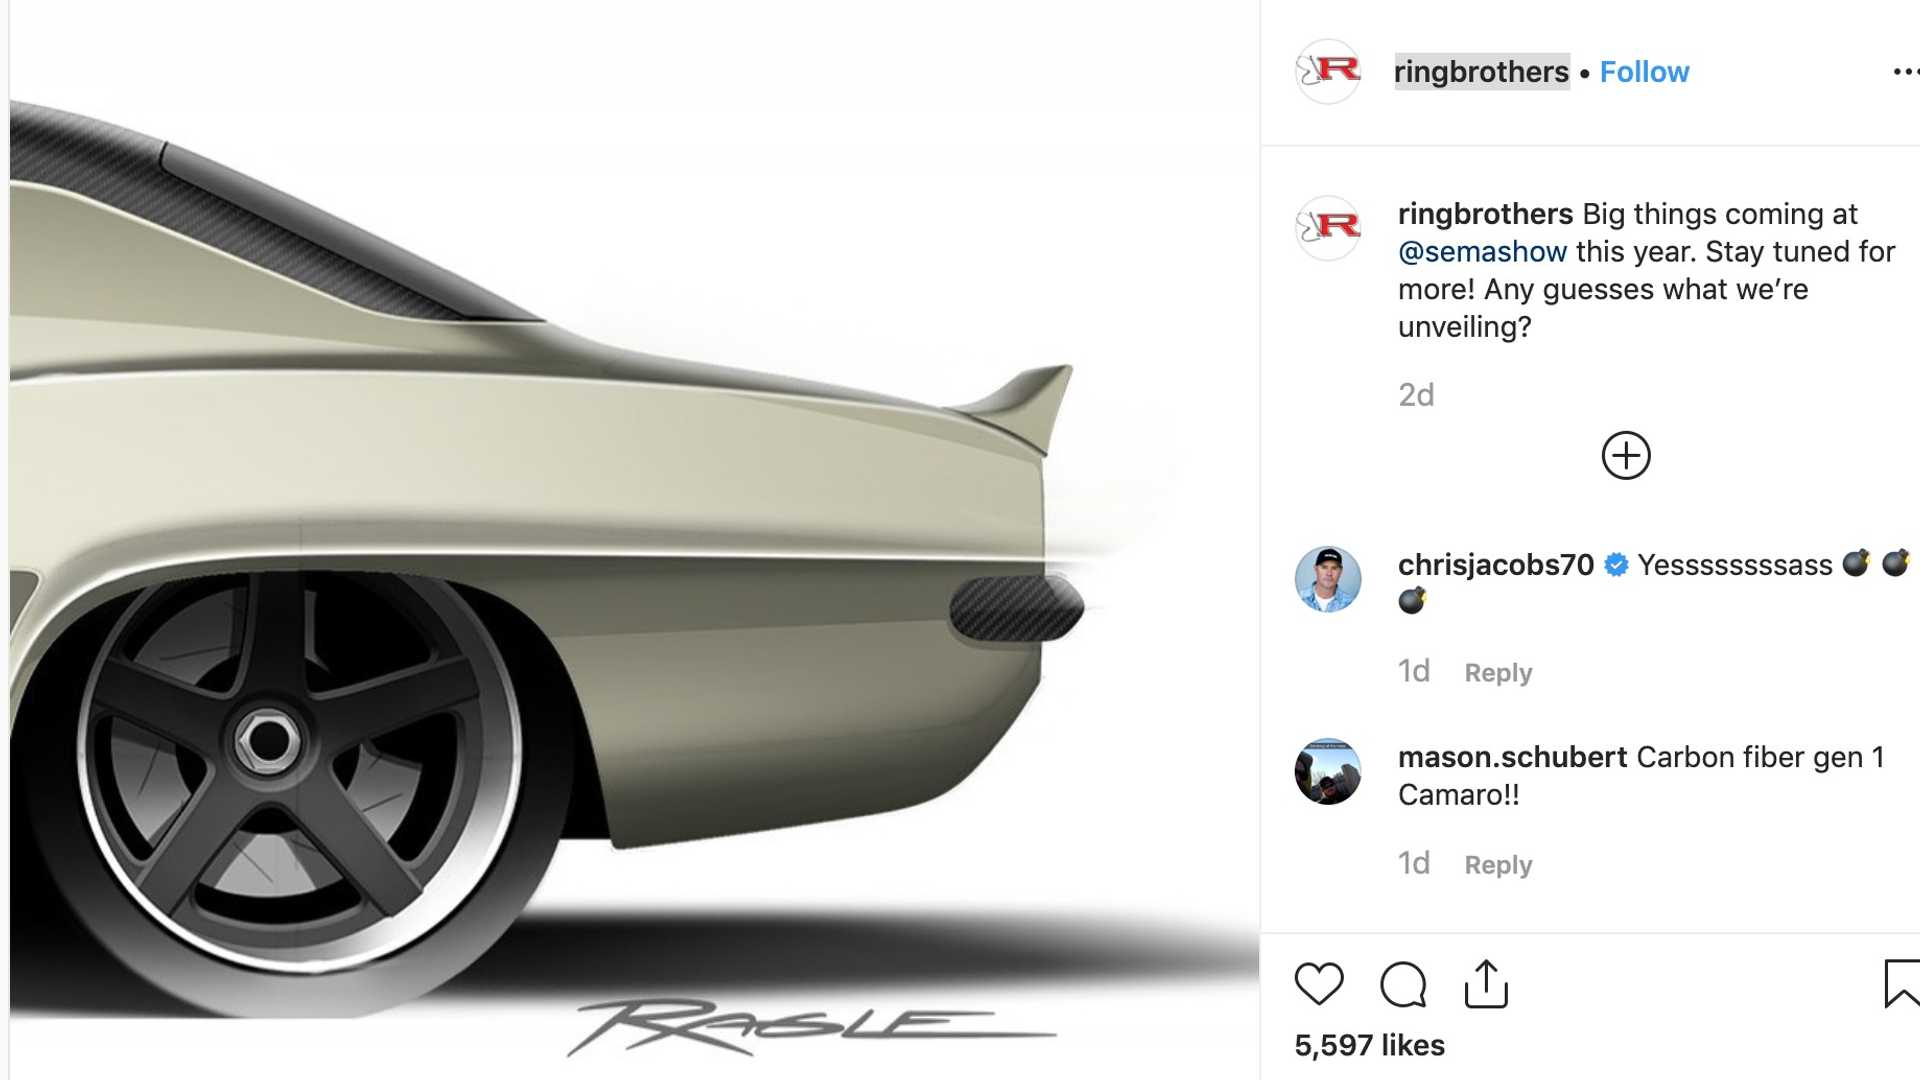 Ringbrothers Teases Classic Chevy Camaro Wearing Carbon Fiber For SEMA